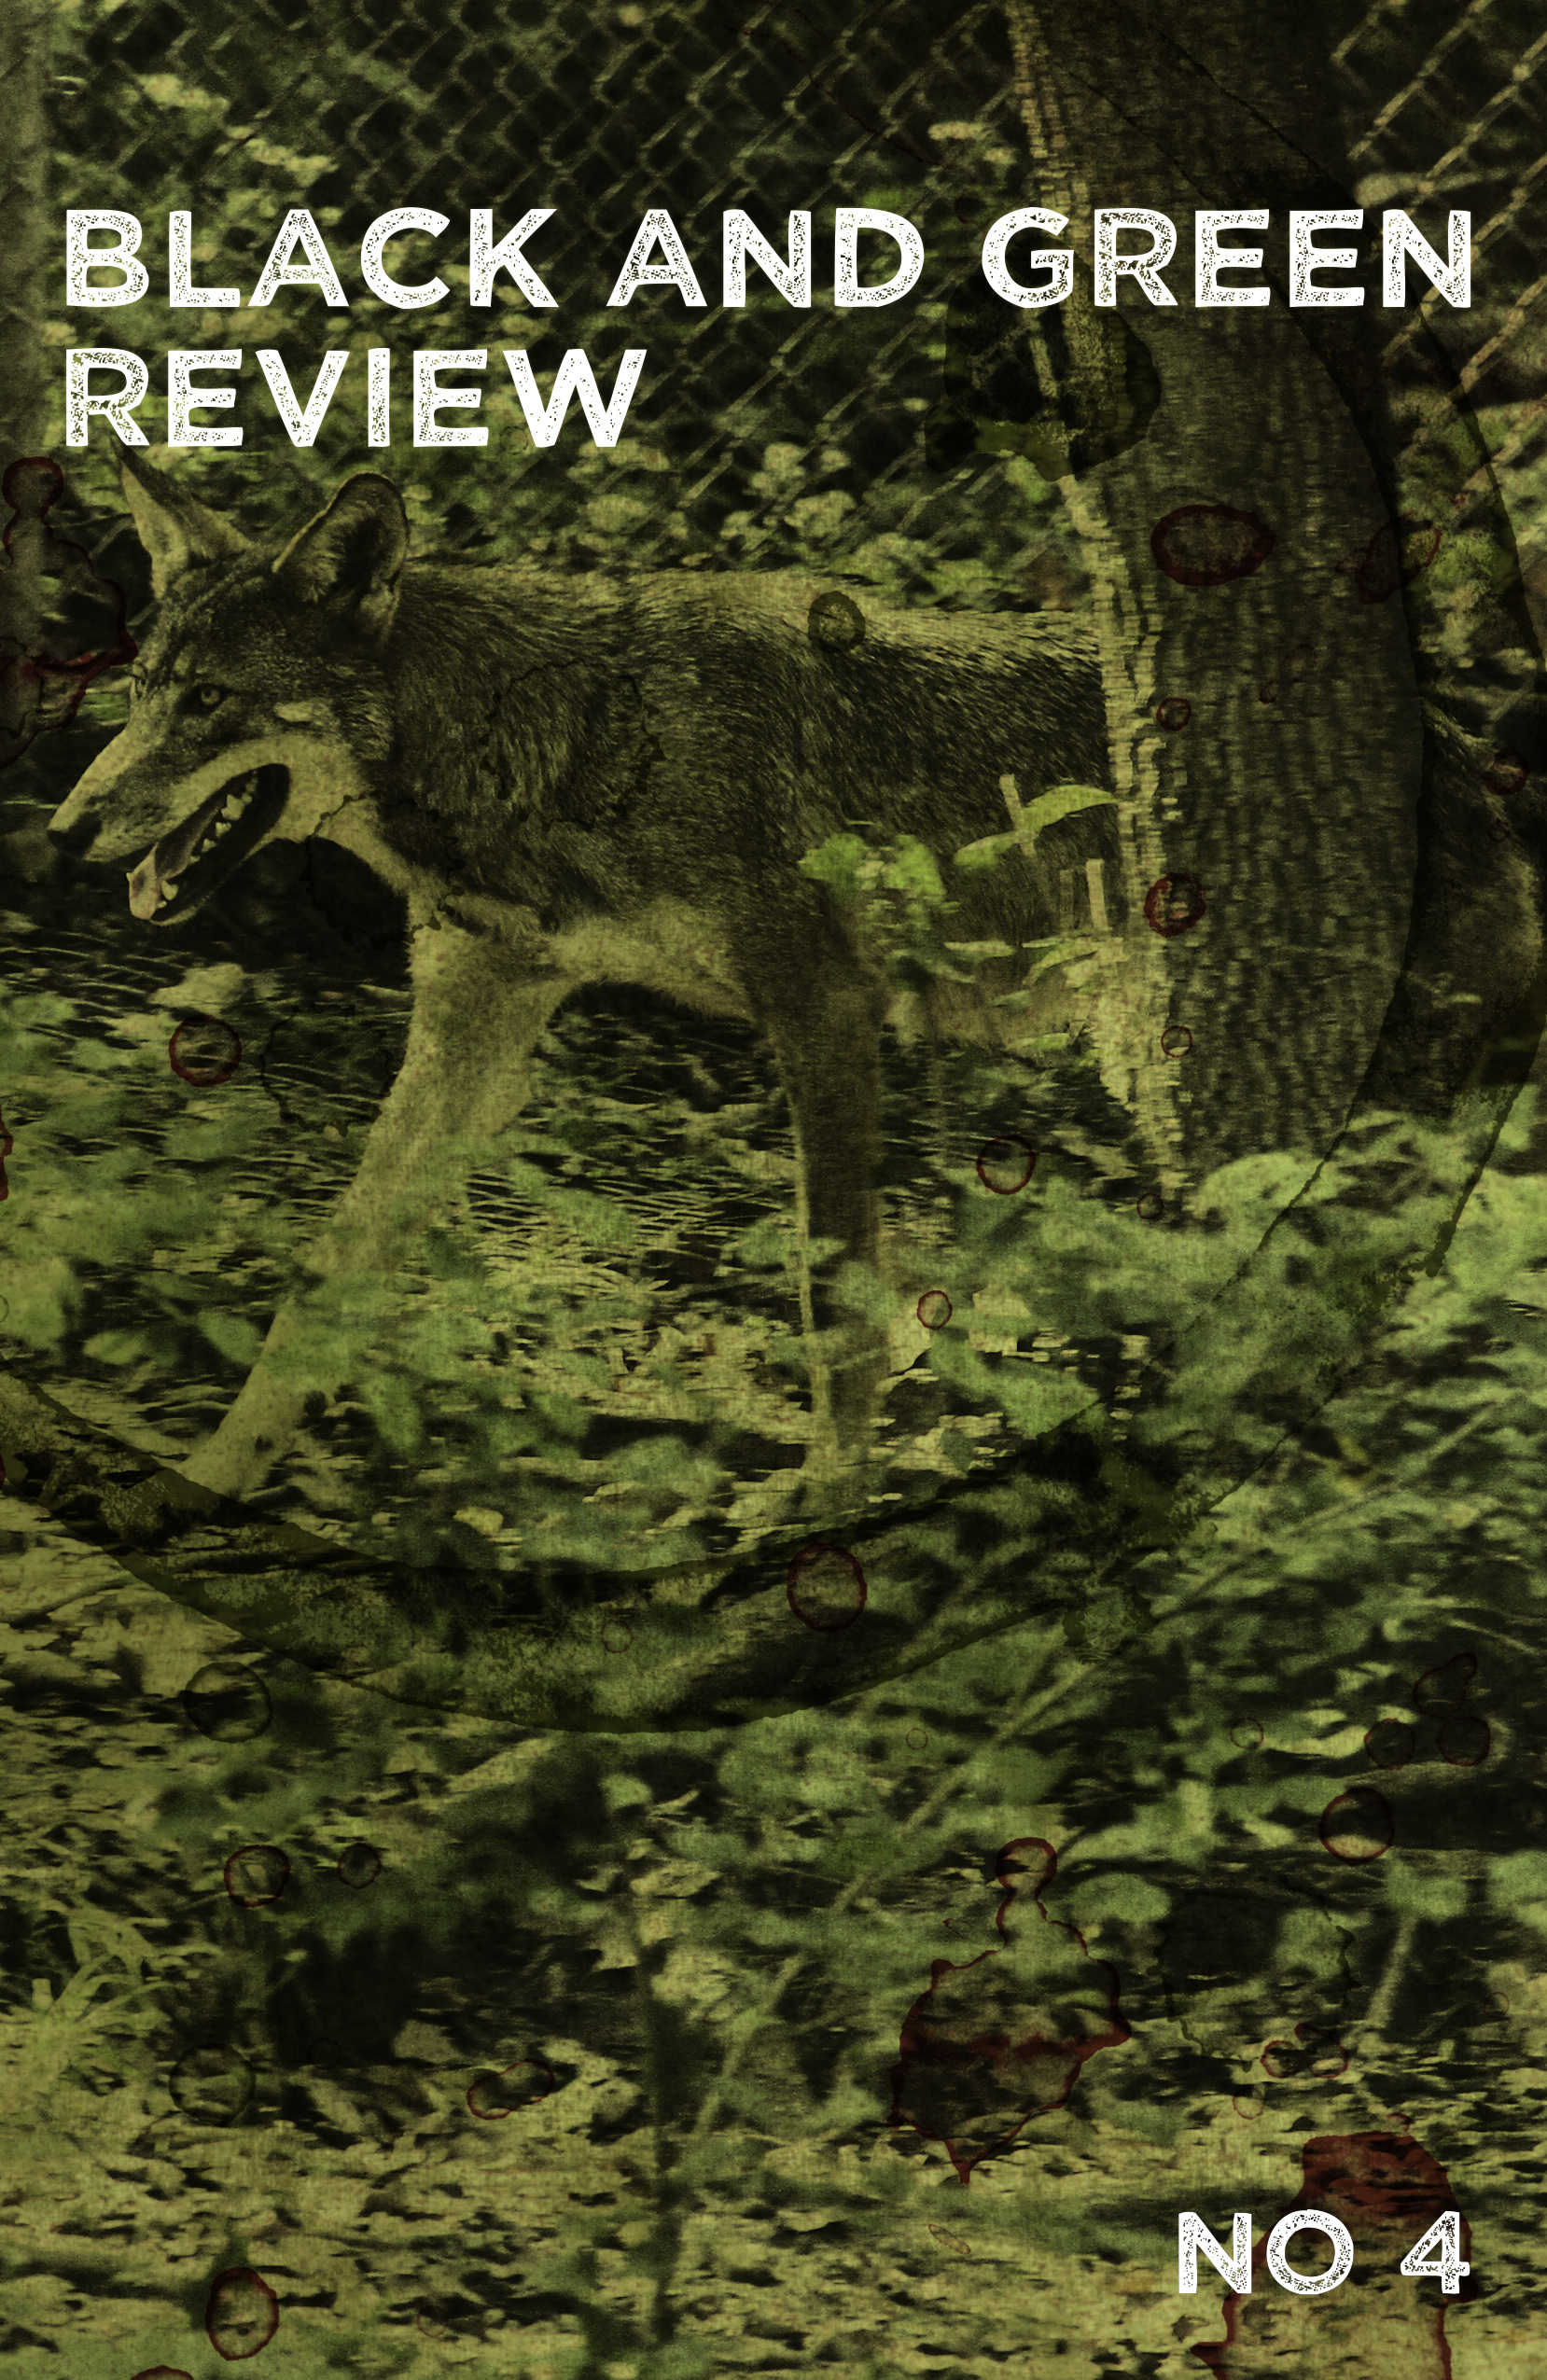 Black and Green Review no 4 - No 4, Winter 2016. 216 pages, printed on recycled paper. Book version is sold out. Click here to buy the EBook. Opening Editorial - Kevin TuckerESSAYSFear Factor - Sky HiattMaps - Natasha AlvarezTowards a Feral Future - Four Legged HumanModernity Takes Over - John ZerzanSociety Without Strangers - Kevin TuckerDISCUSSIONSResponseFrequently Made Assertions - Kevin TuckerOffshore Wind - Ian SmithMeans and Ends - Kevin TuckerMeaning in the Age of Nihilism - John ZerzanWithout Adoration - Sine CultusMoralism: A Technological Problem? - Kevin TuckerFIELD NOTES FROM THE PRIMAL WARTrue Crime Case Files: Shutting Down the Tar Sands PipelinesShutting Down the Dakota Access PipelineStemming the Tide - Cliff HayesEcology of a Bubble - Kevin TuckerThe Hidden Ones from Ishi in Two WorldsREVIEWSBecoming NatureTwo European Thinkers to the Rescue - John ZerzanChildren of the New World